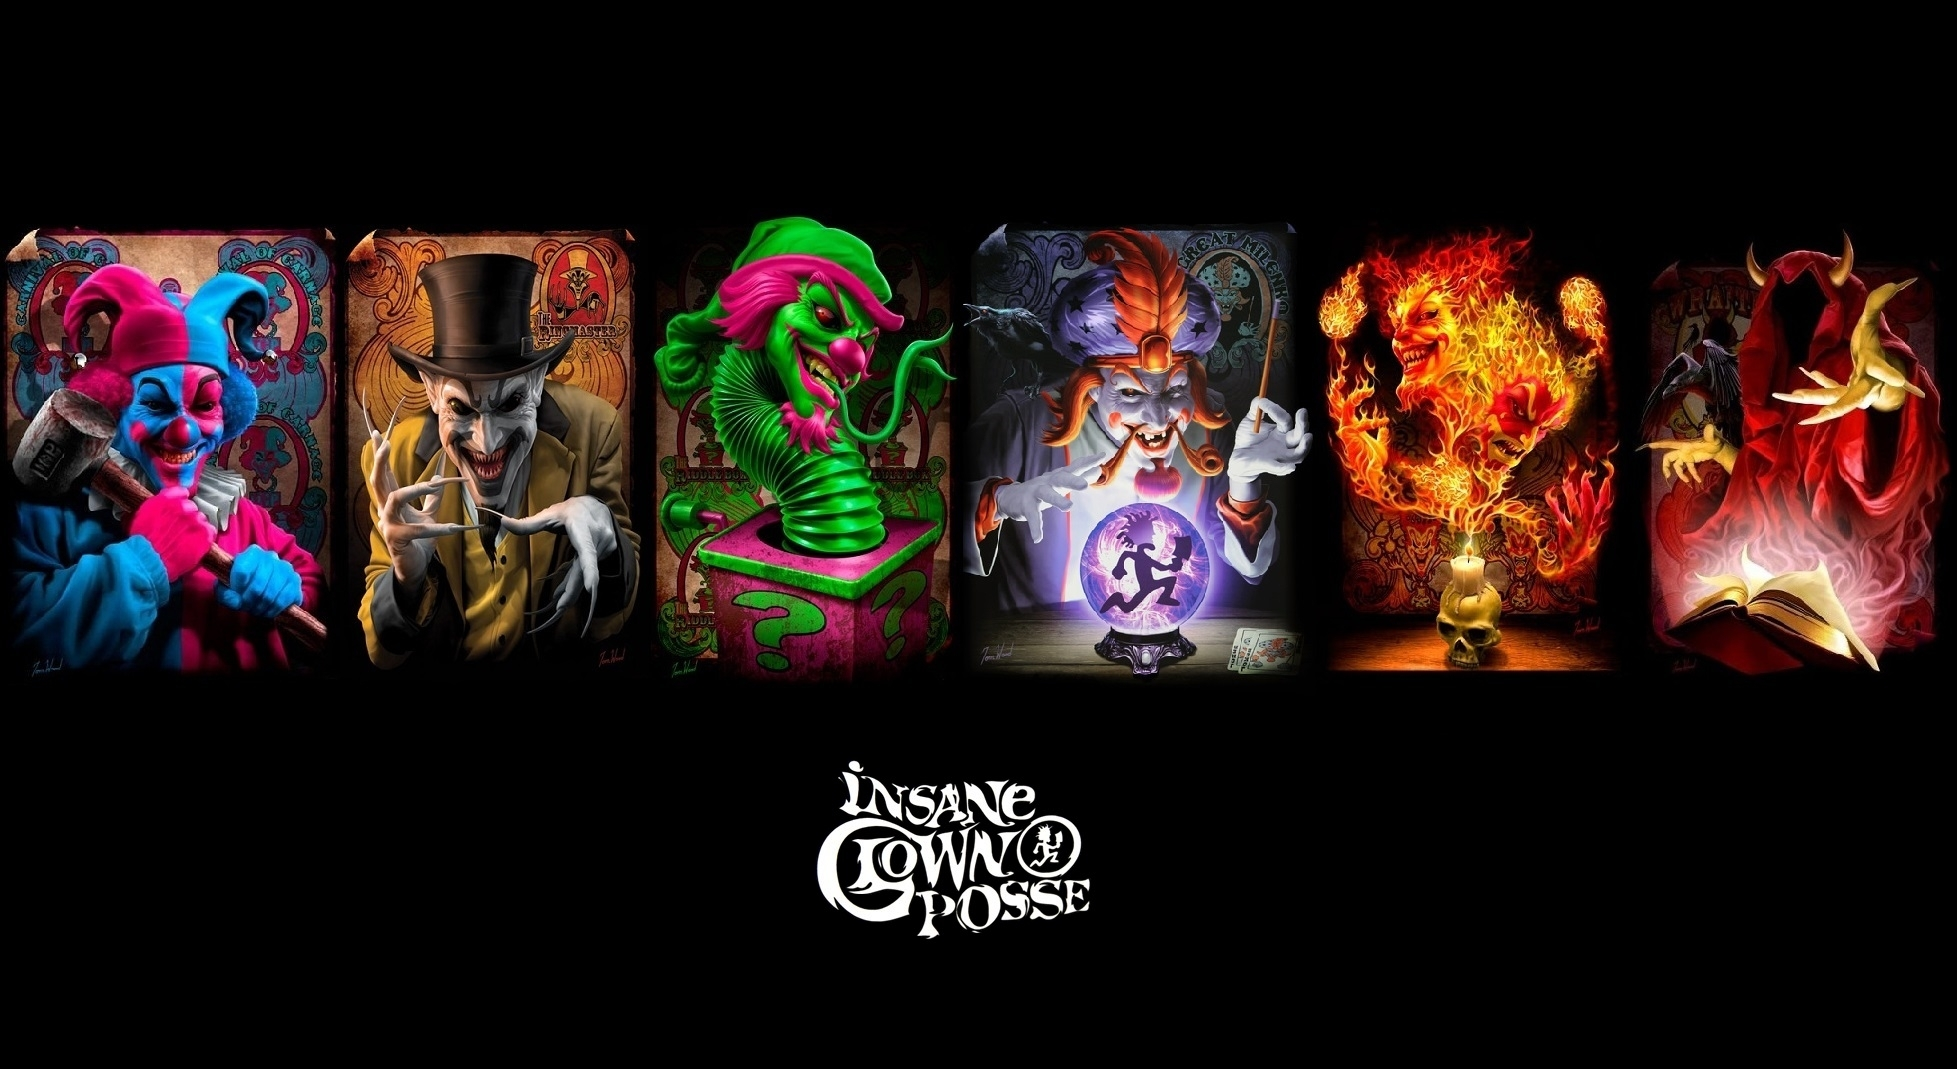 insane clown posse wallpaper | 1957x1069 | id:50152